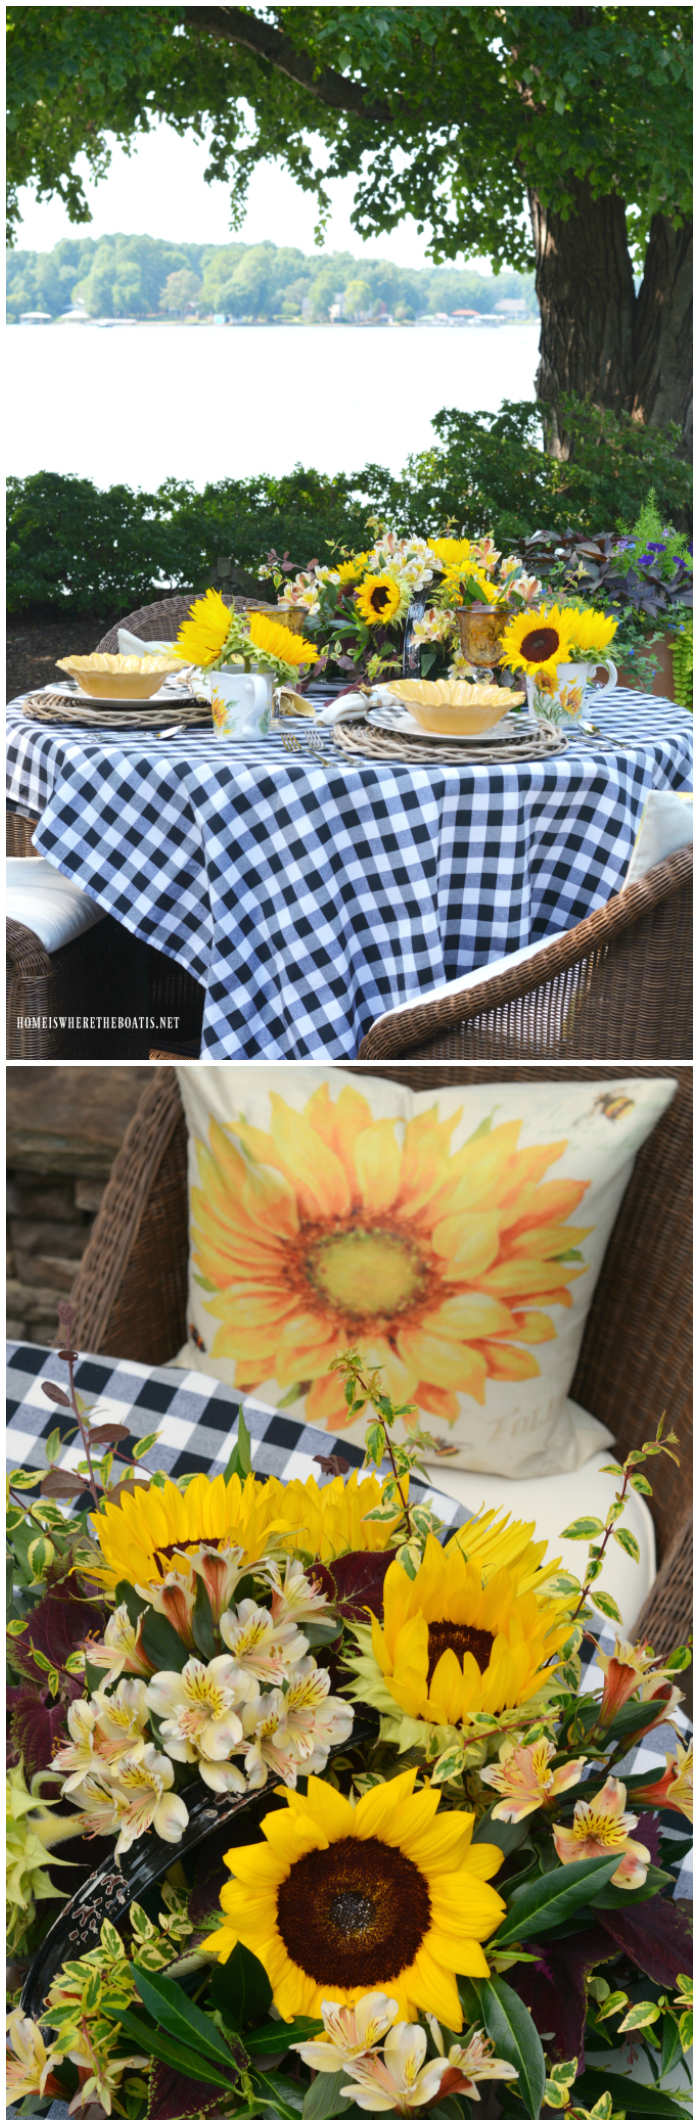 Lakeside Table with Sunflowers and Black and White Check | ©homeiswheretheboatis.net #tablesetting #alfresco #summer #sunflowers #BuffaloCheck